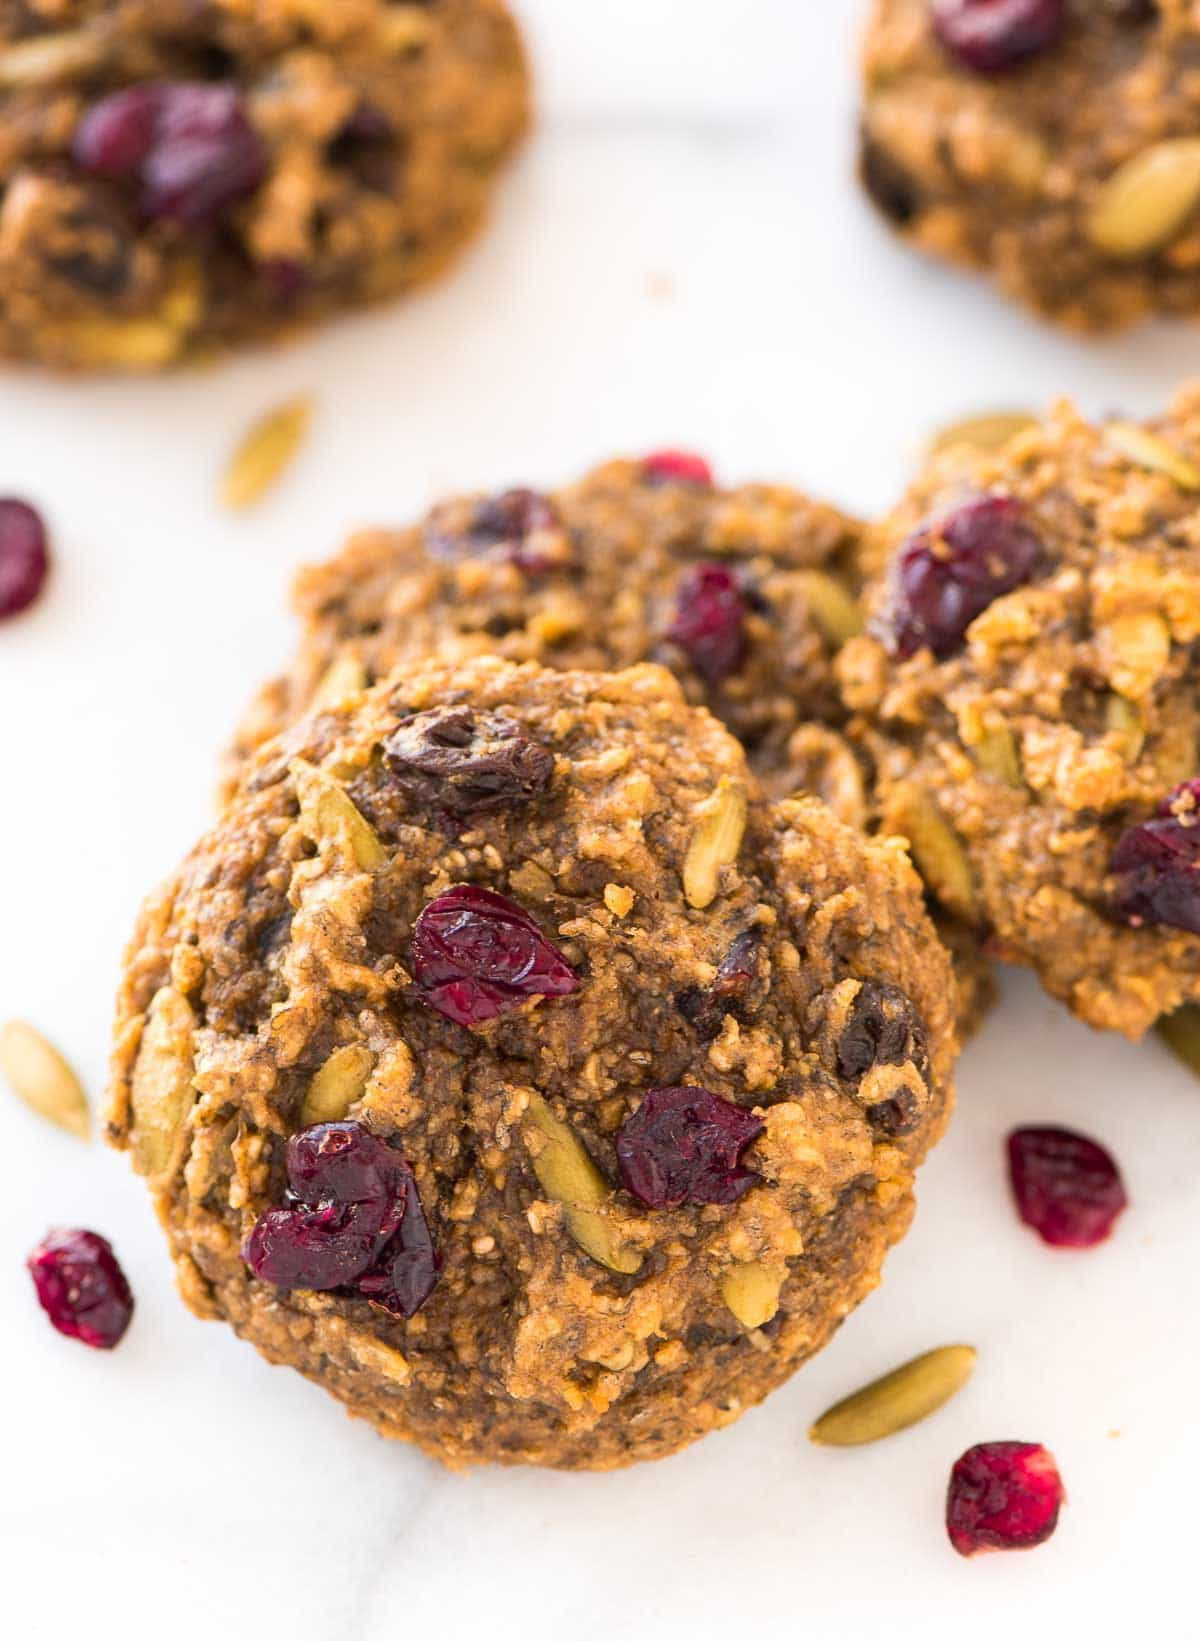 Peanut Butter Protein Cookies with banana, pumpkin seeds, and oatmeal. Add chocolate chips or any of your favorite mix-ins! Easy and gluten free. Recipe at wellplated.com | @wellplated